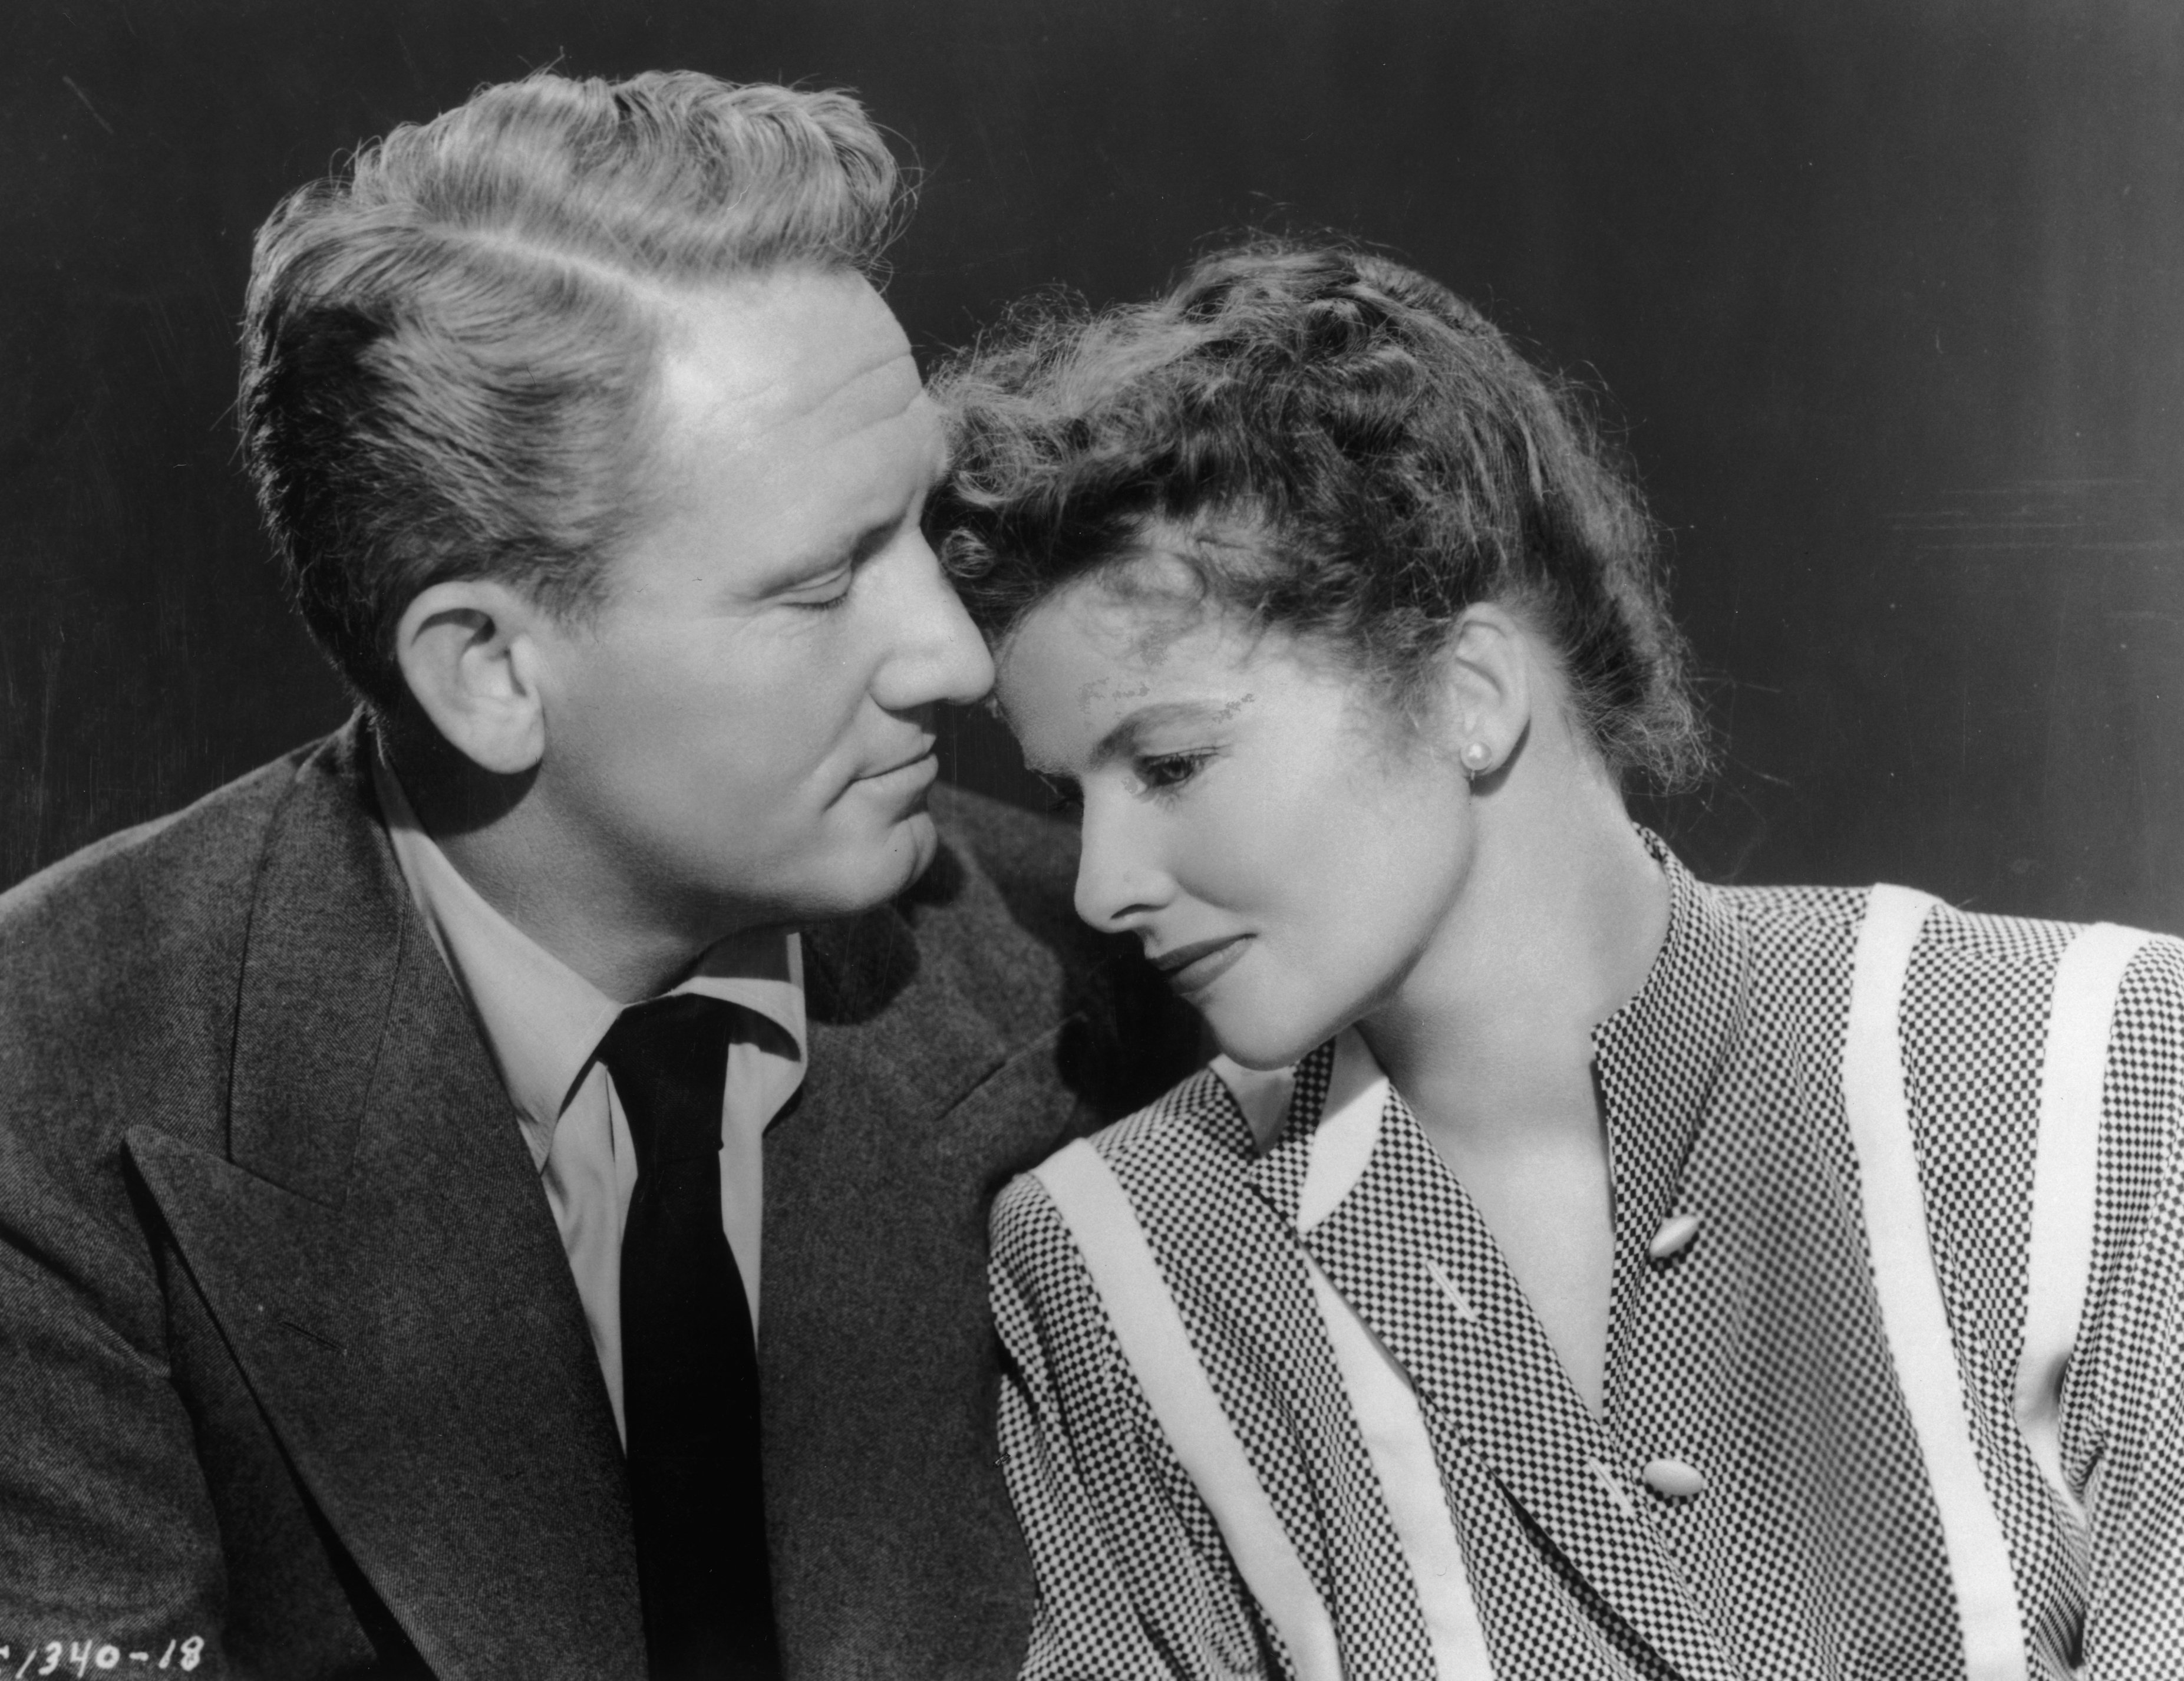 American actors Spencer Tracy (1900 - 1967) and Katharine Hepburn (1907 - 2003) comfort one another in a still from director Harold S Bucquet's film, 'Without Love'.   Source: Getty Images